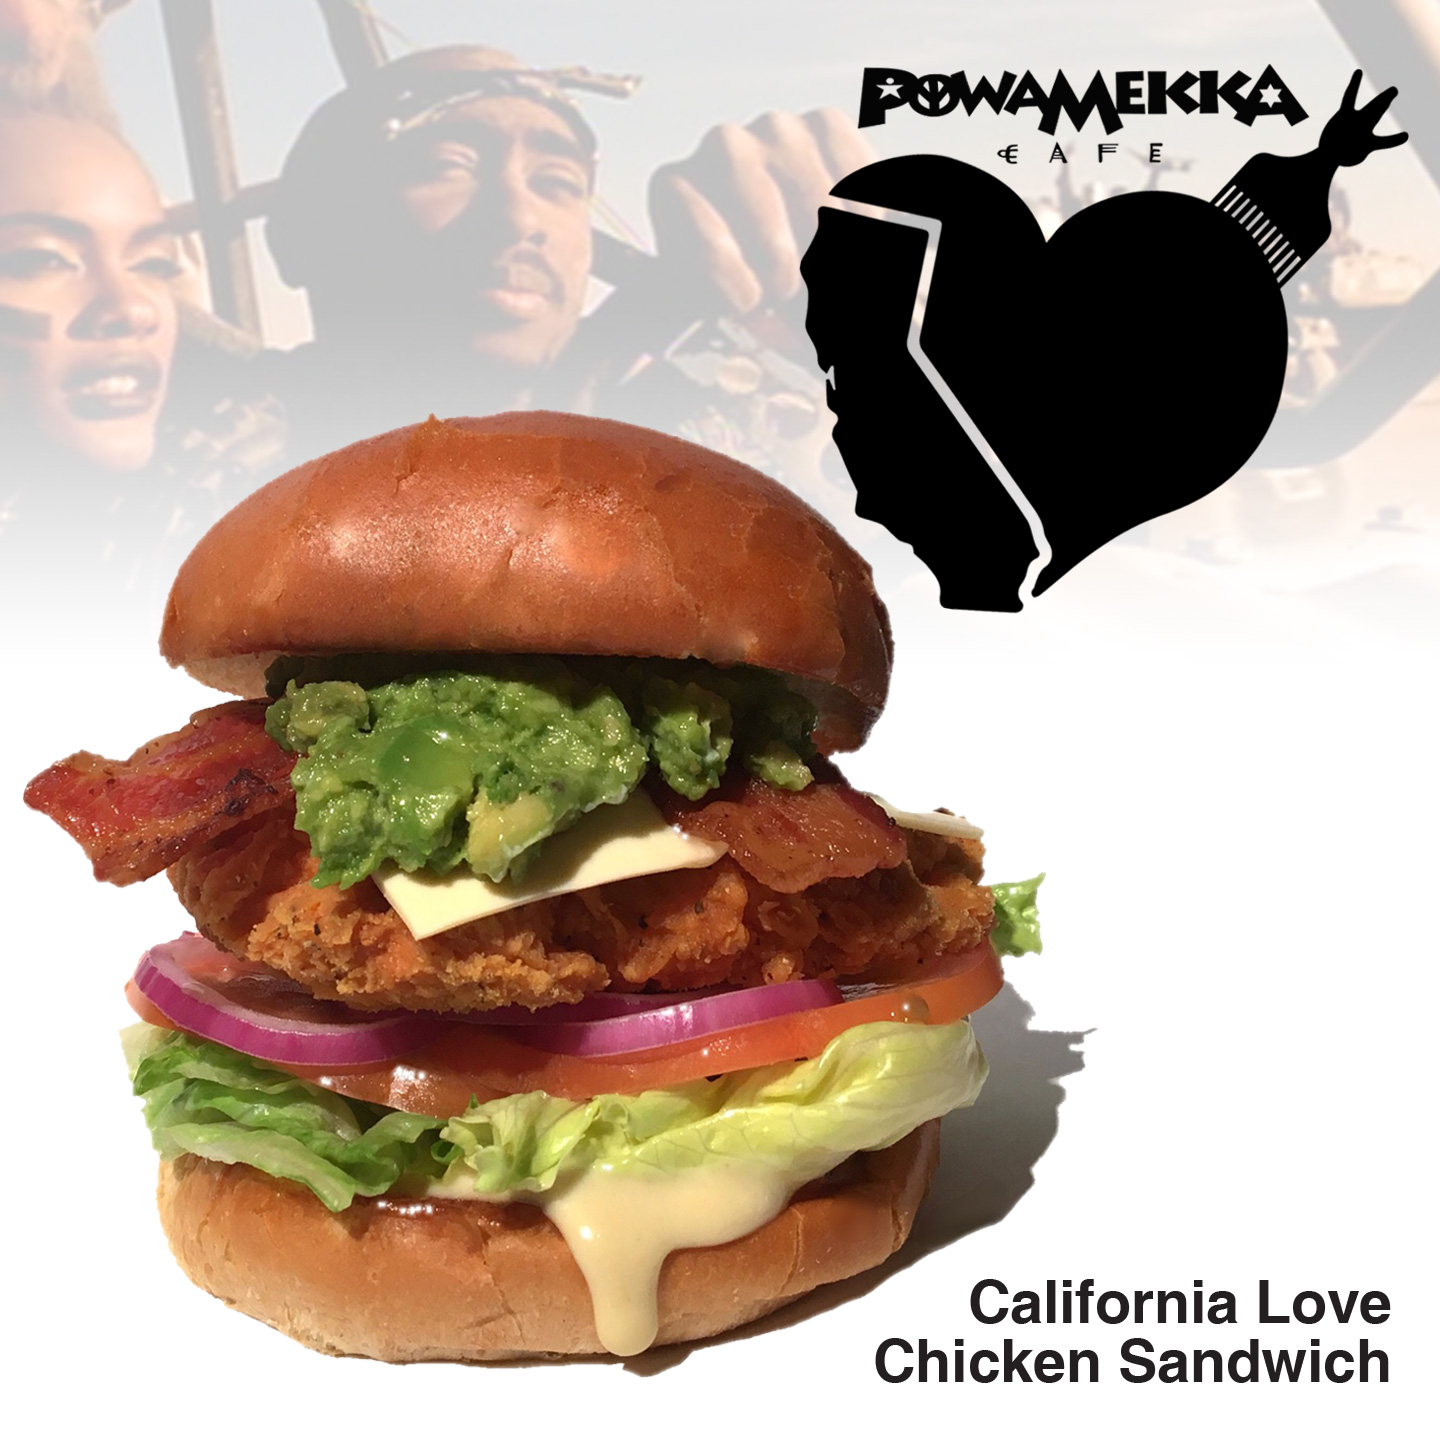 California Love Chicken